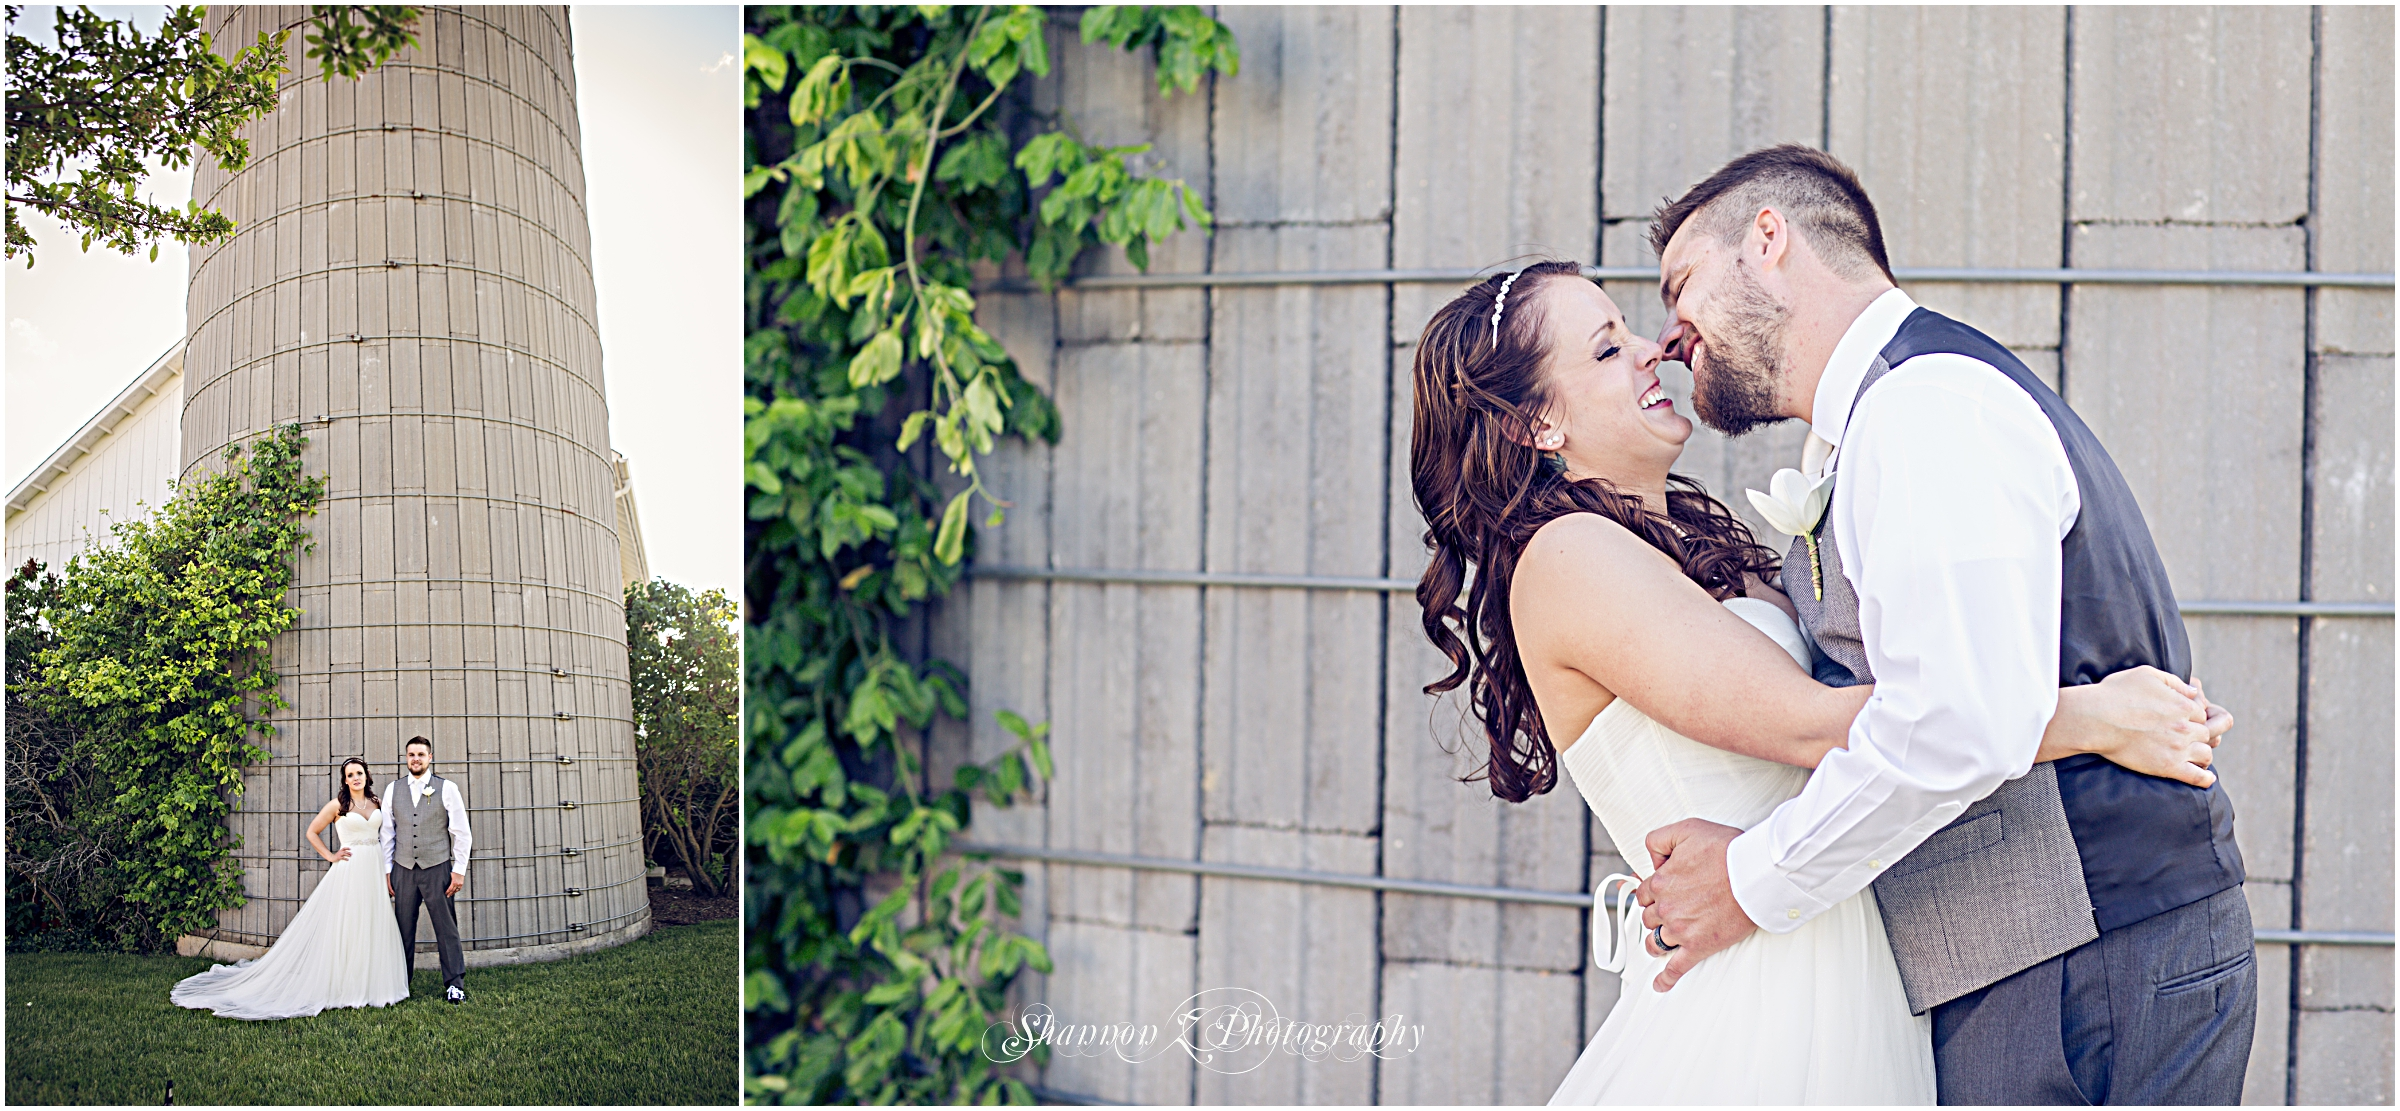 Byron Colby Barn Wedding – Sam & Cory